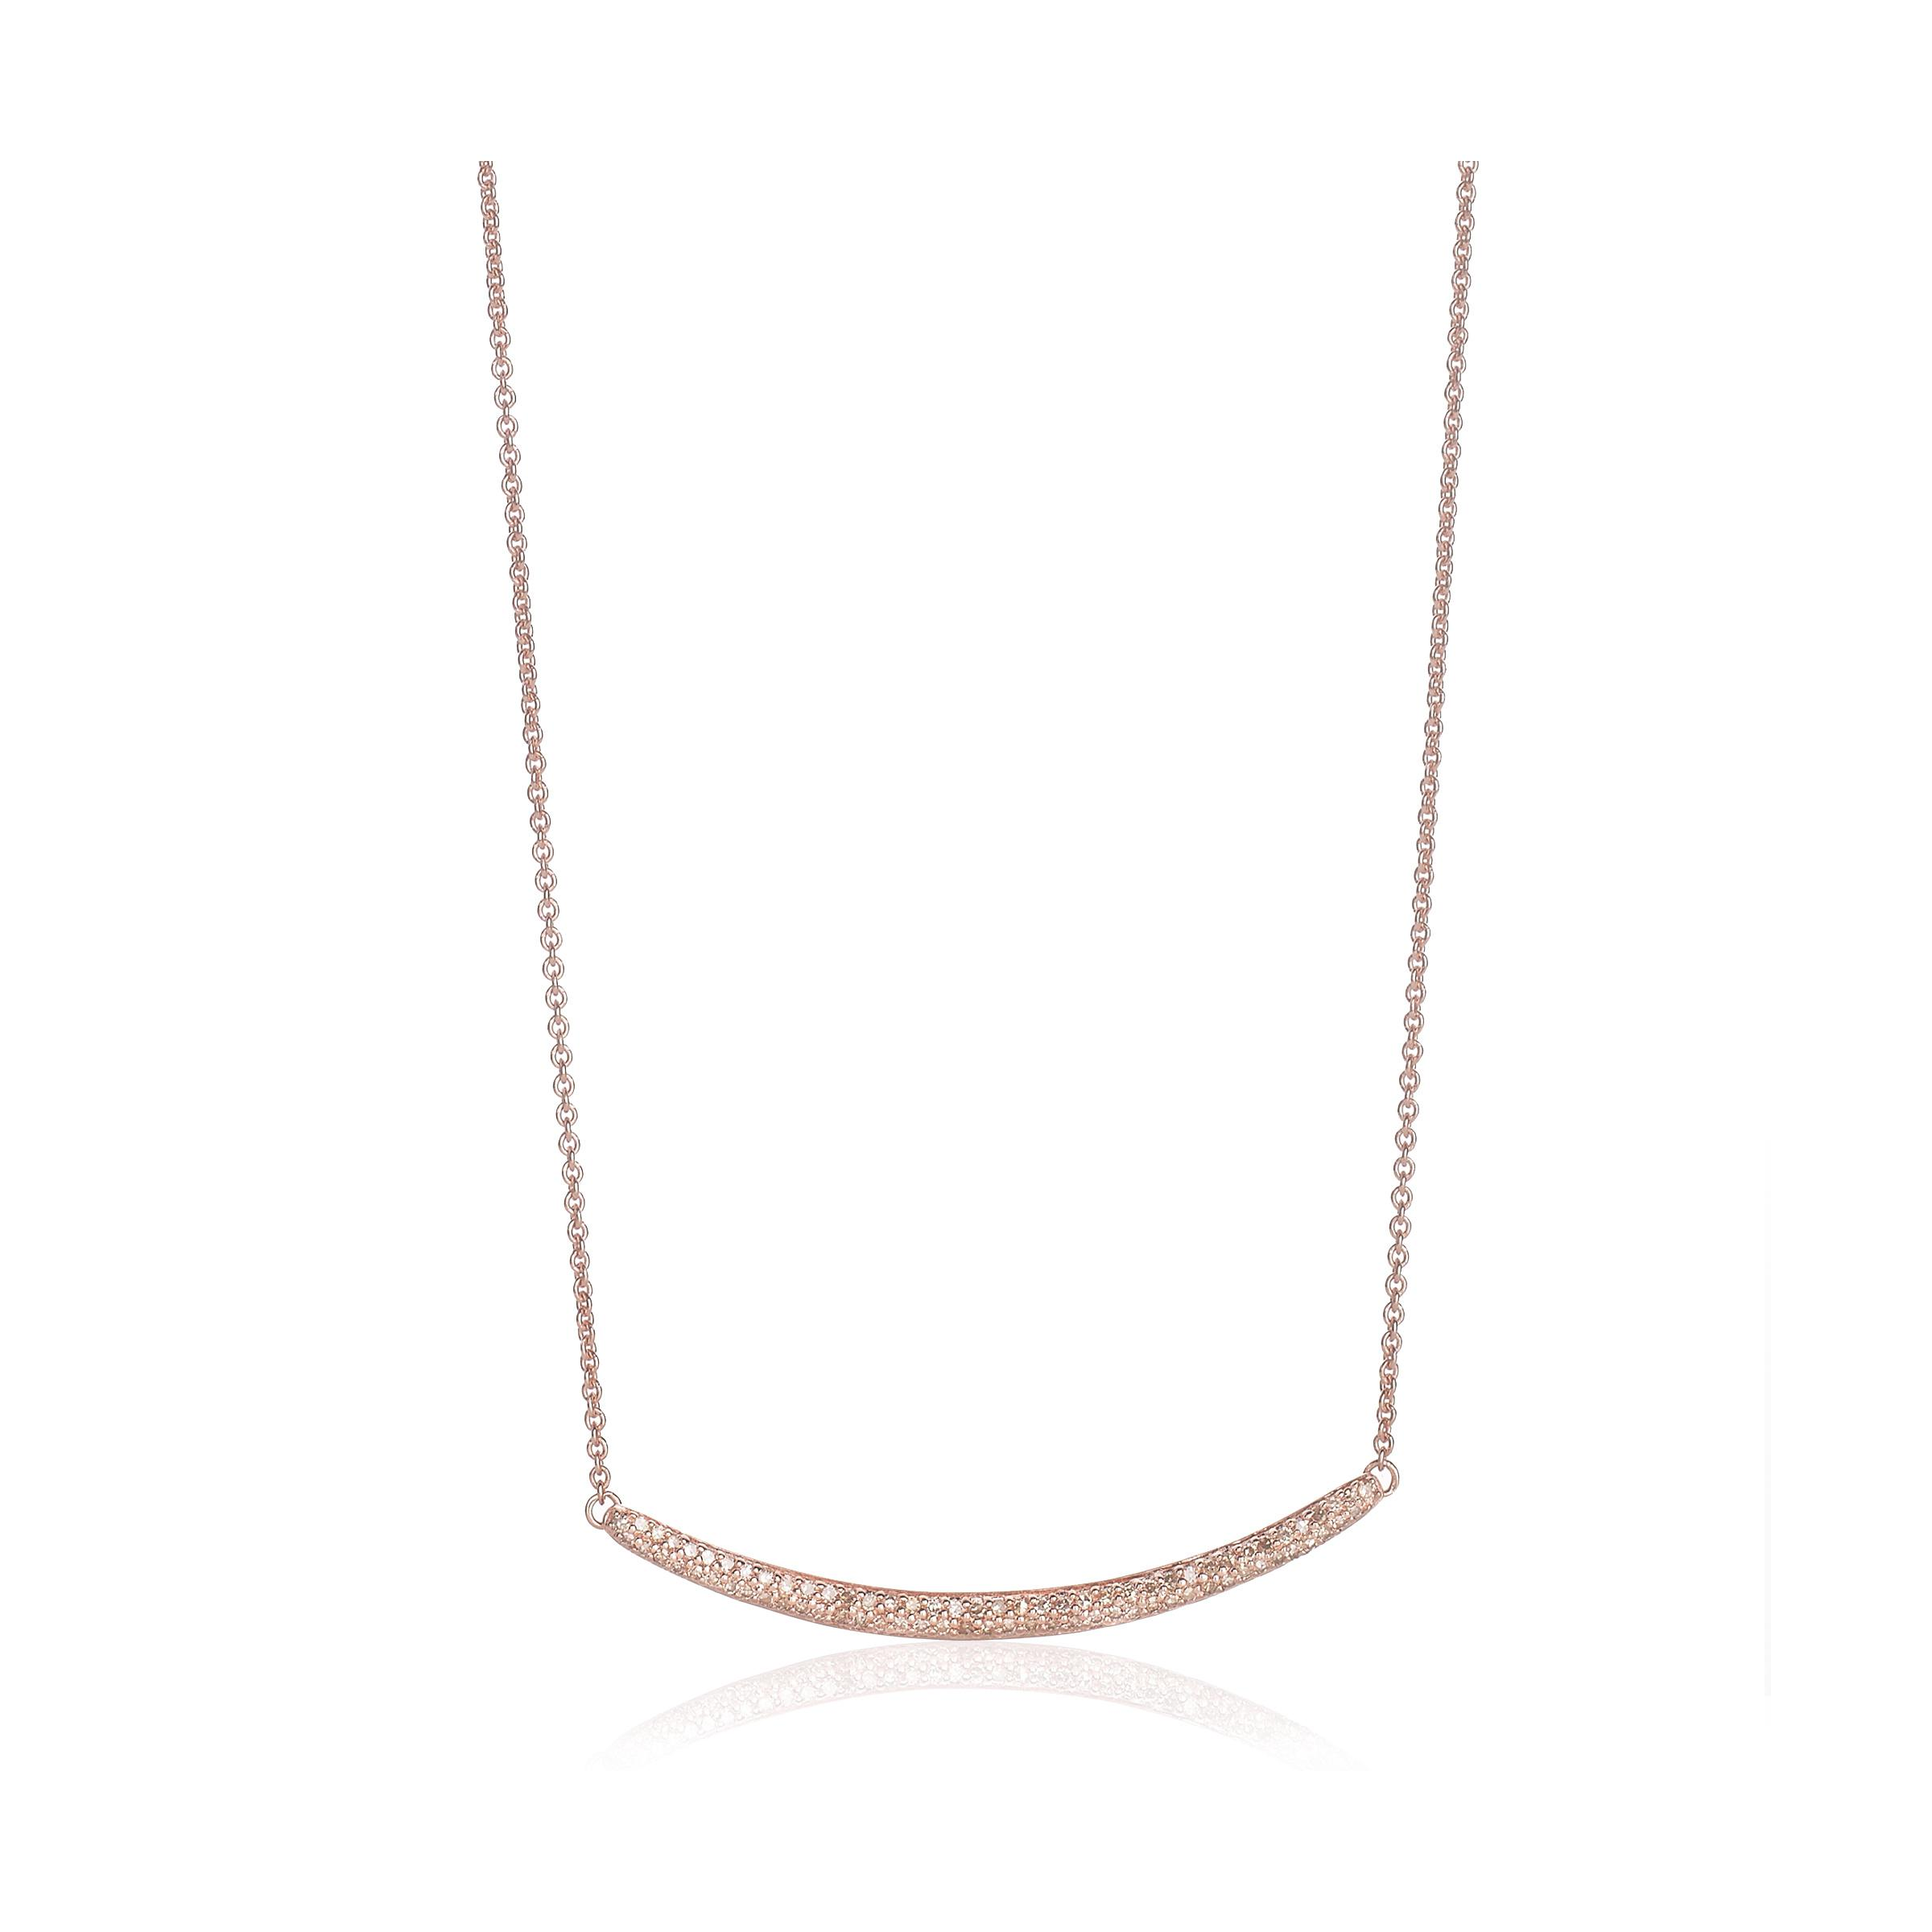 Rose Gold Skinny Curve Necklace Champagne Diamond Monica Vinader 8nlEJg